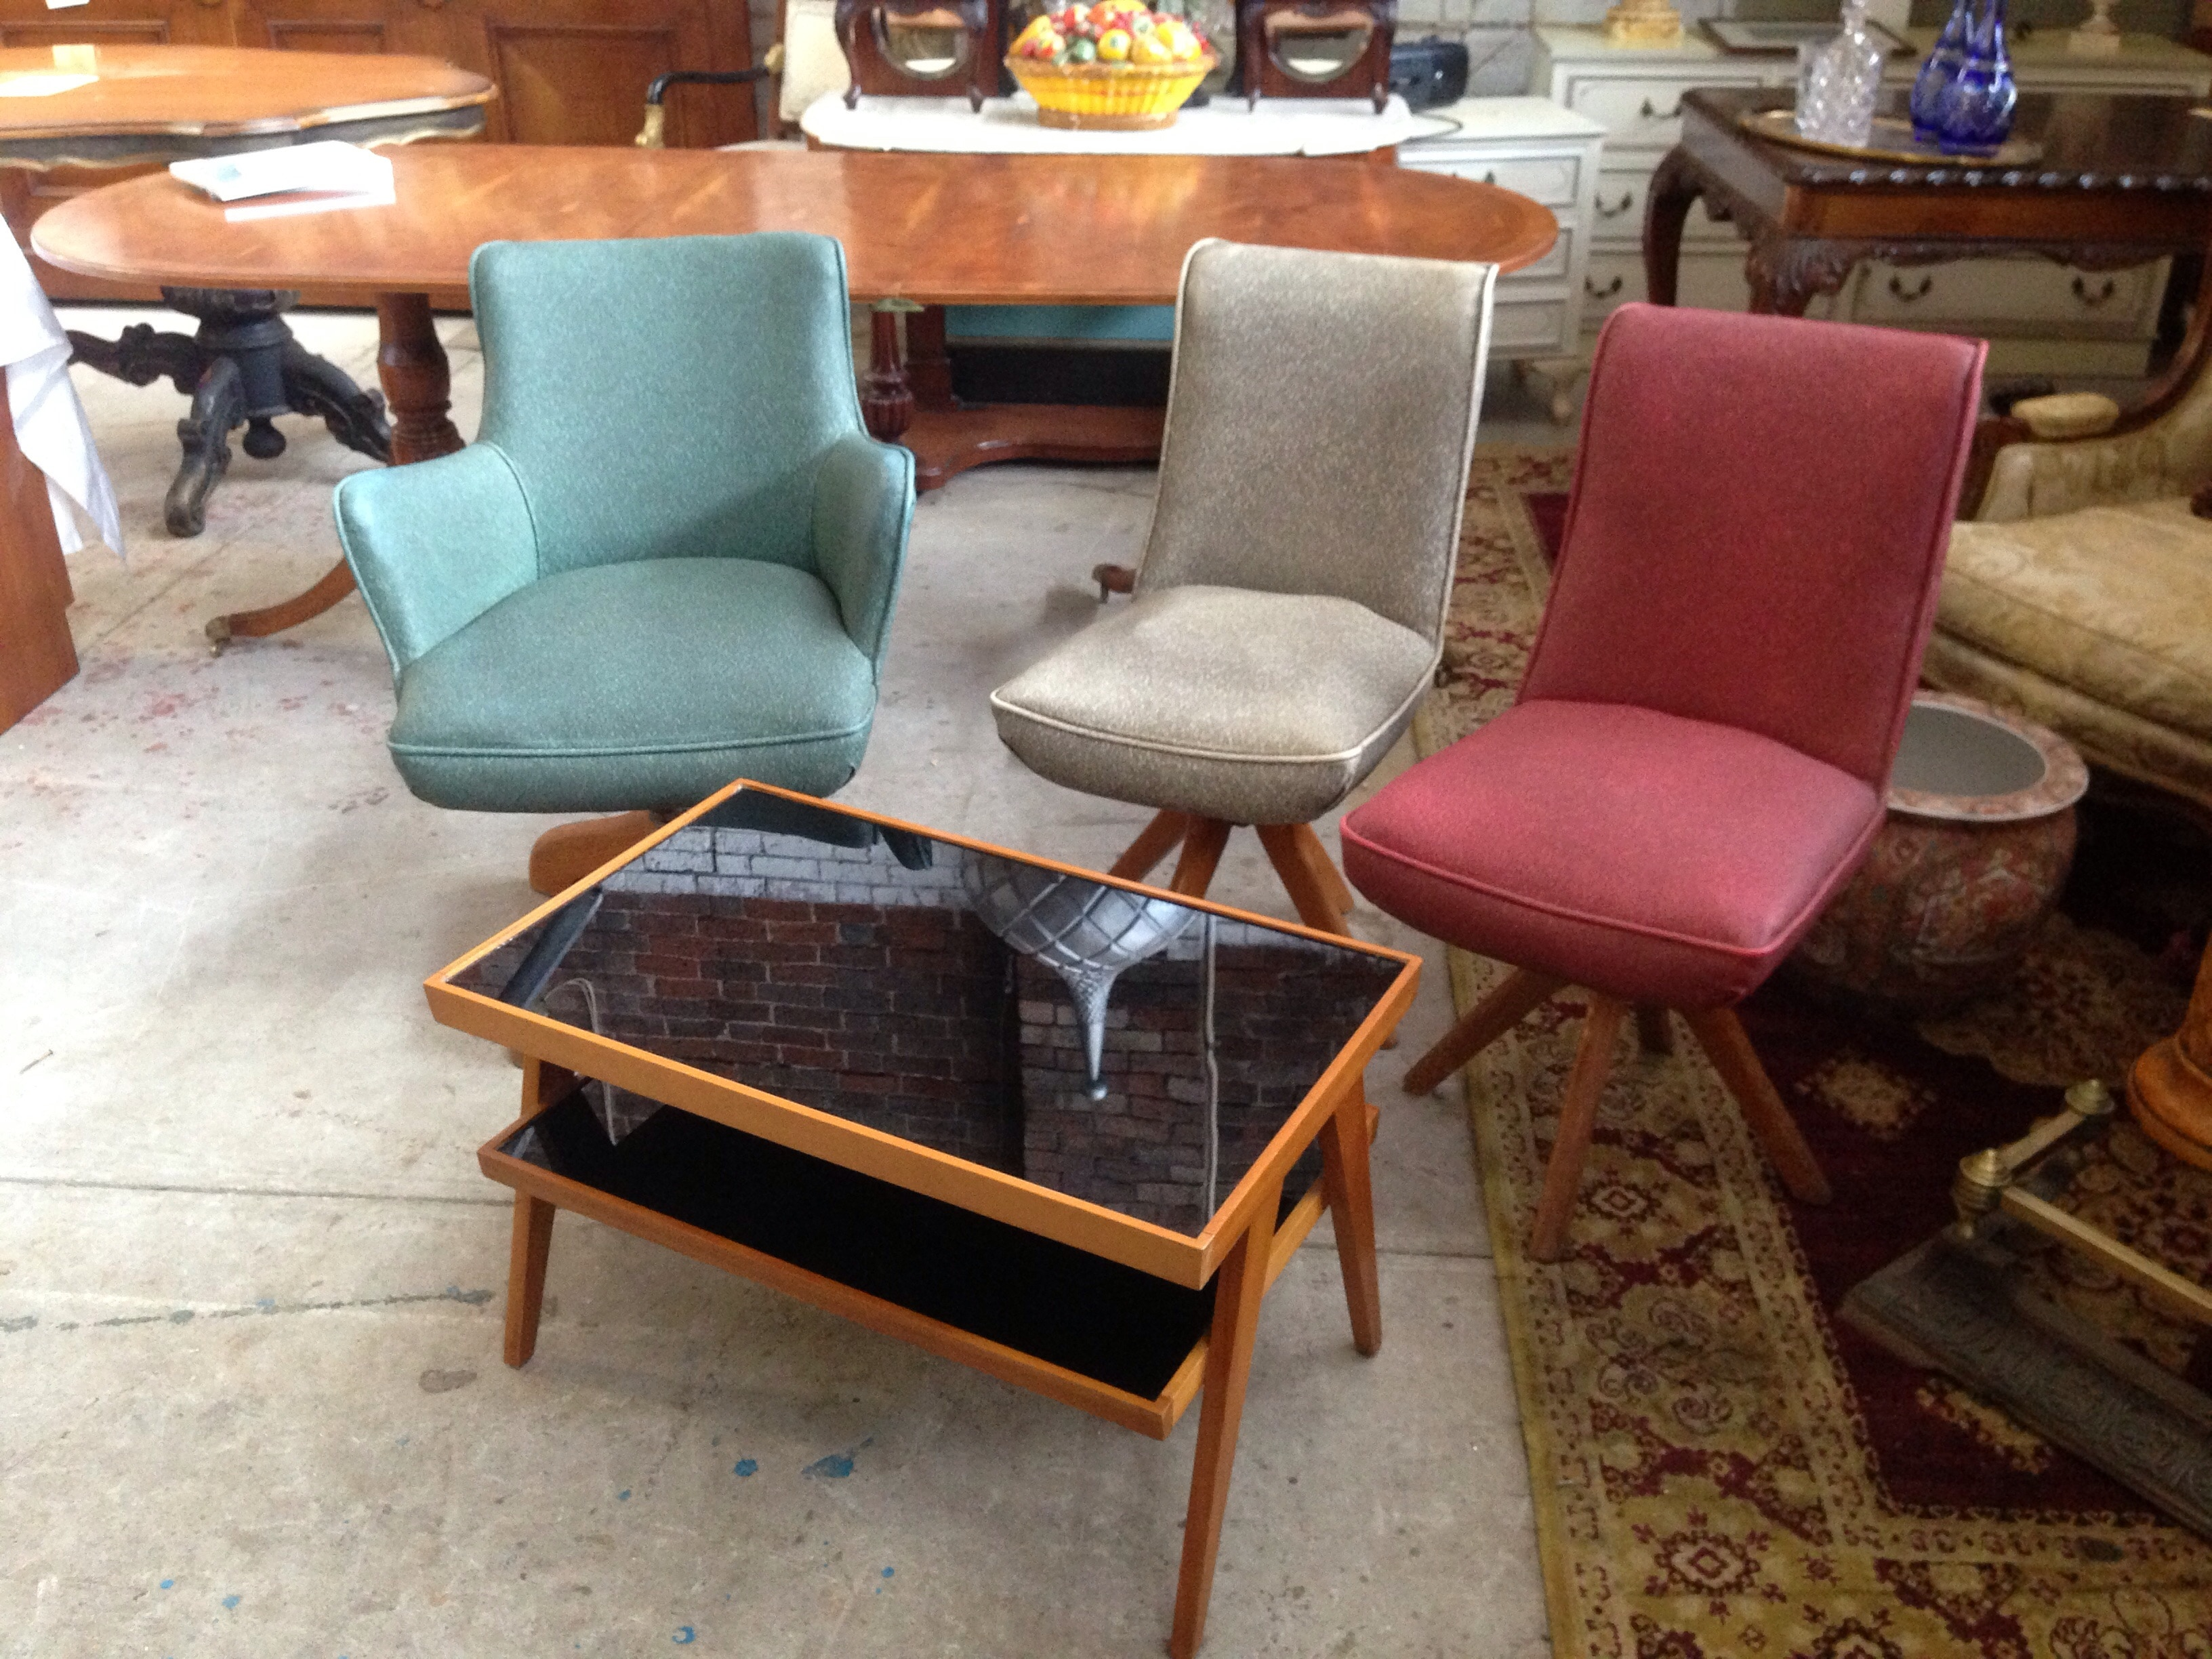 100 Second Hand Furniture Online Adelaide Of Paint And Possession No Ordinary Adelaide